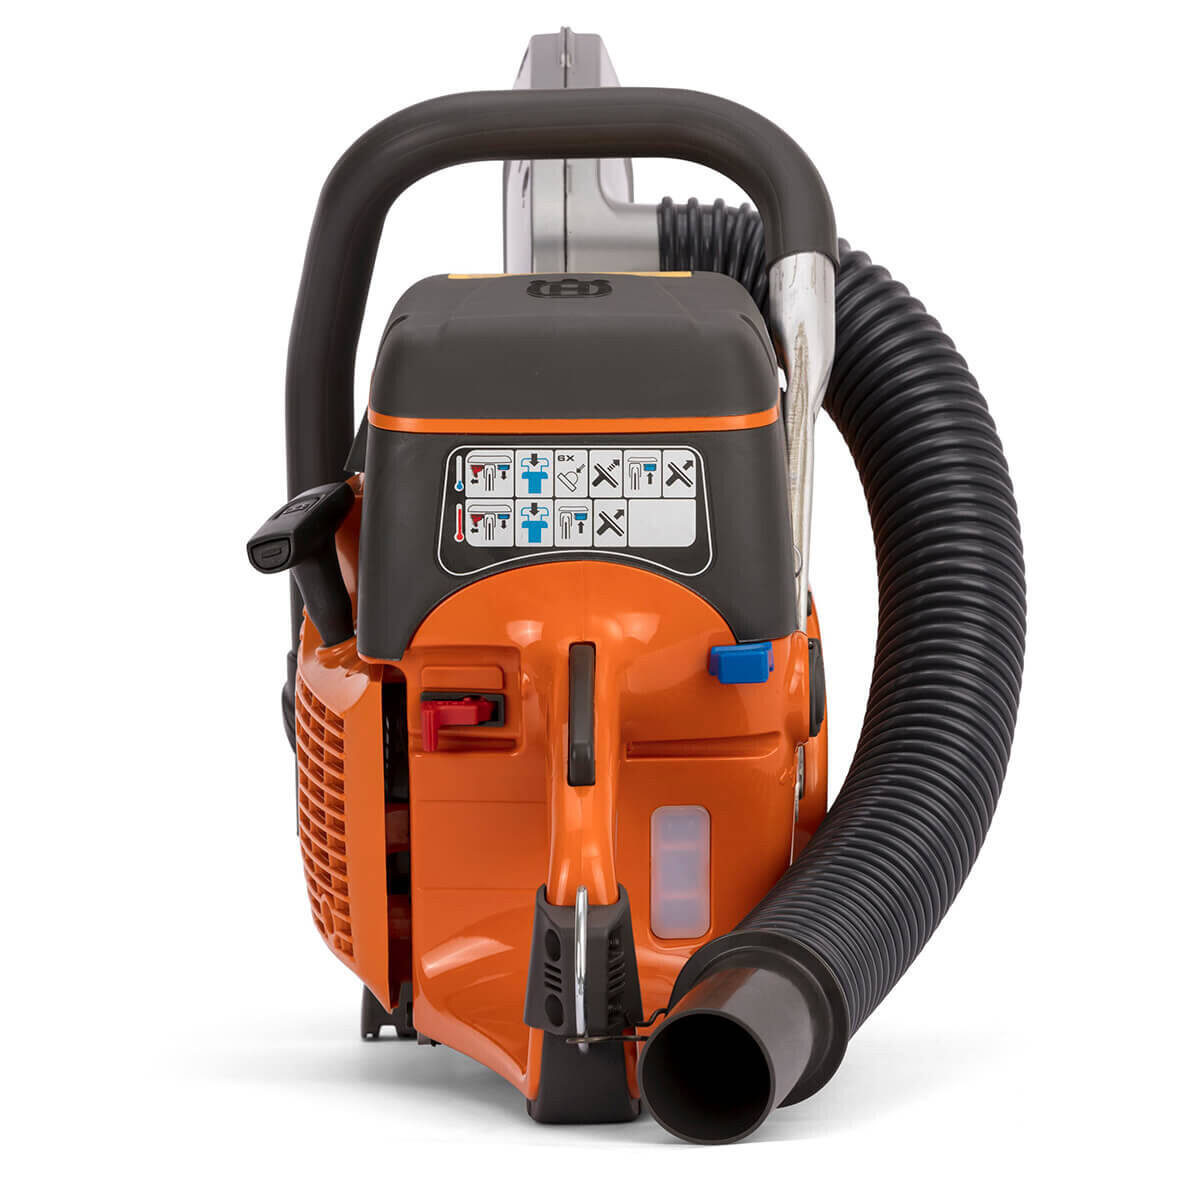 Husqvarna K770 VAC with Hose Attachment for Dust Extraction